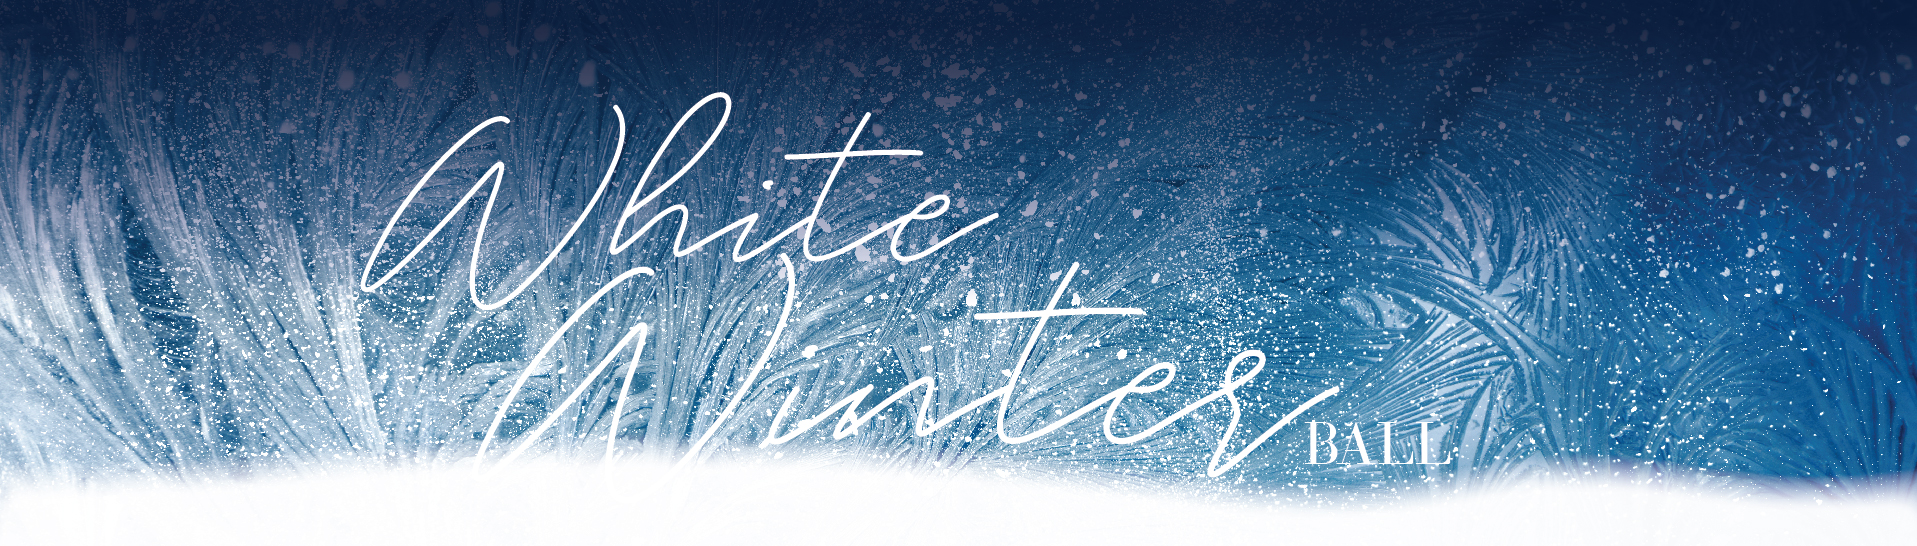 Winter ball header